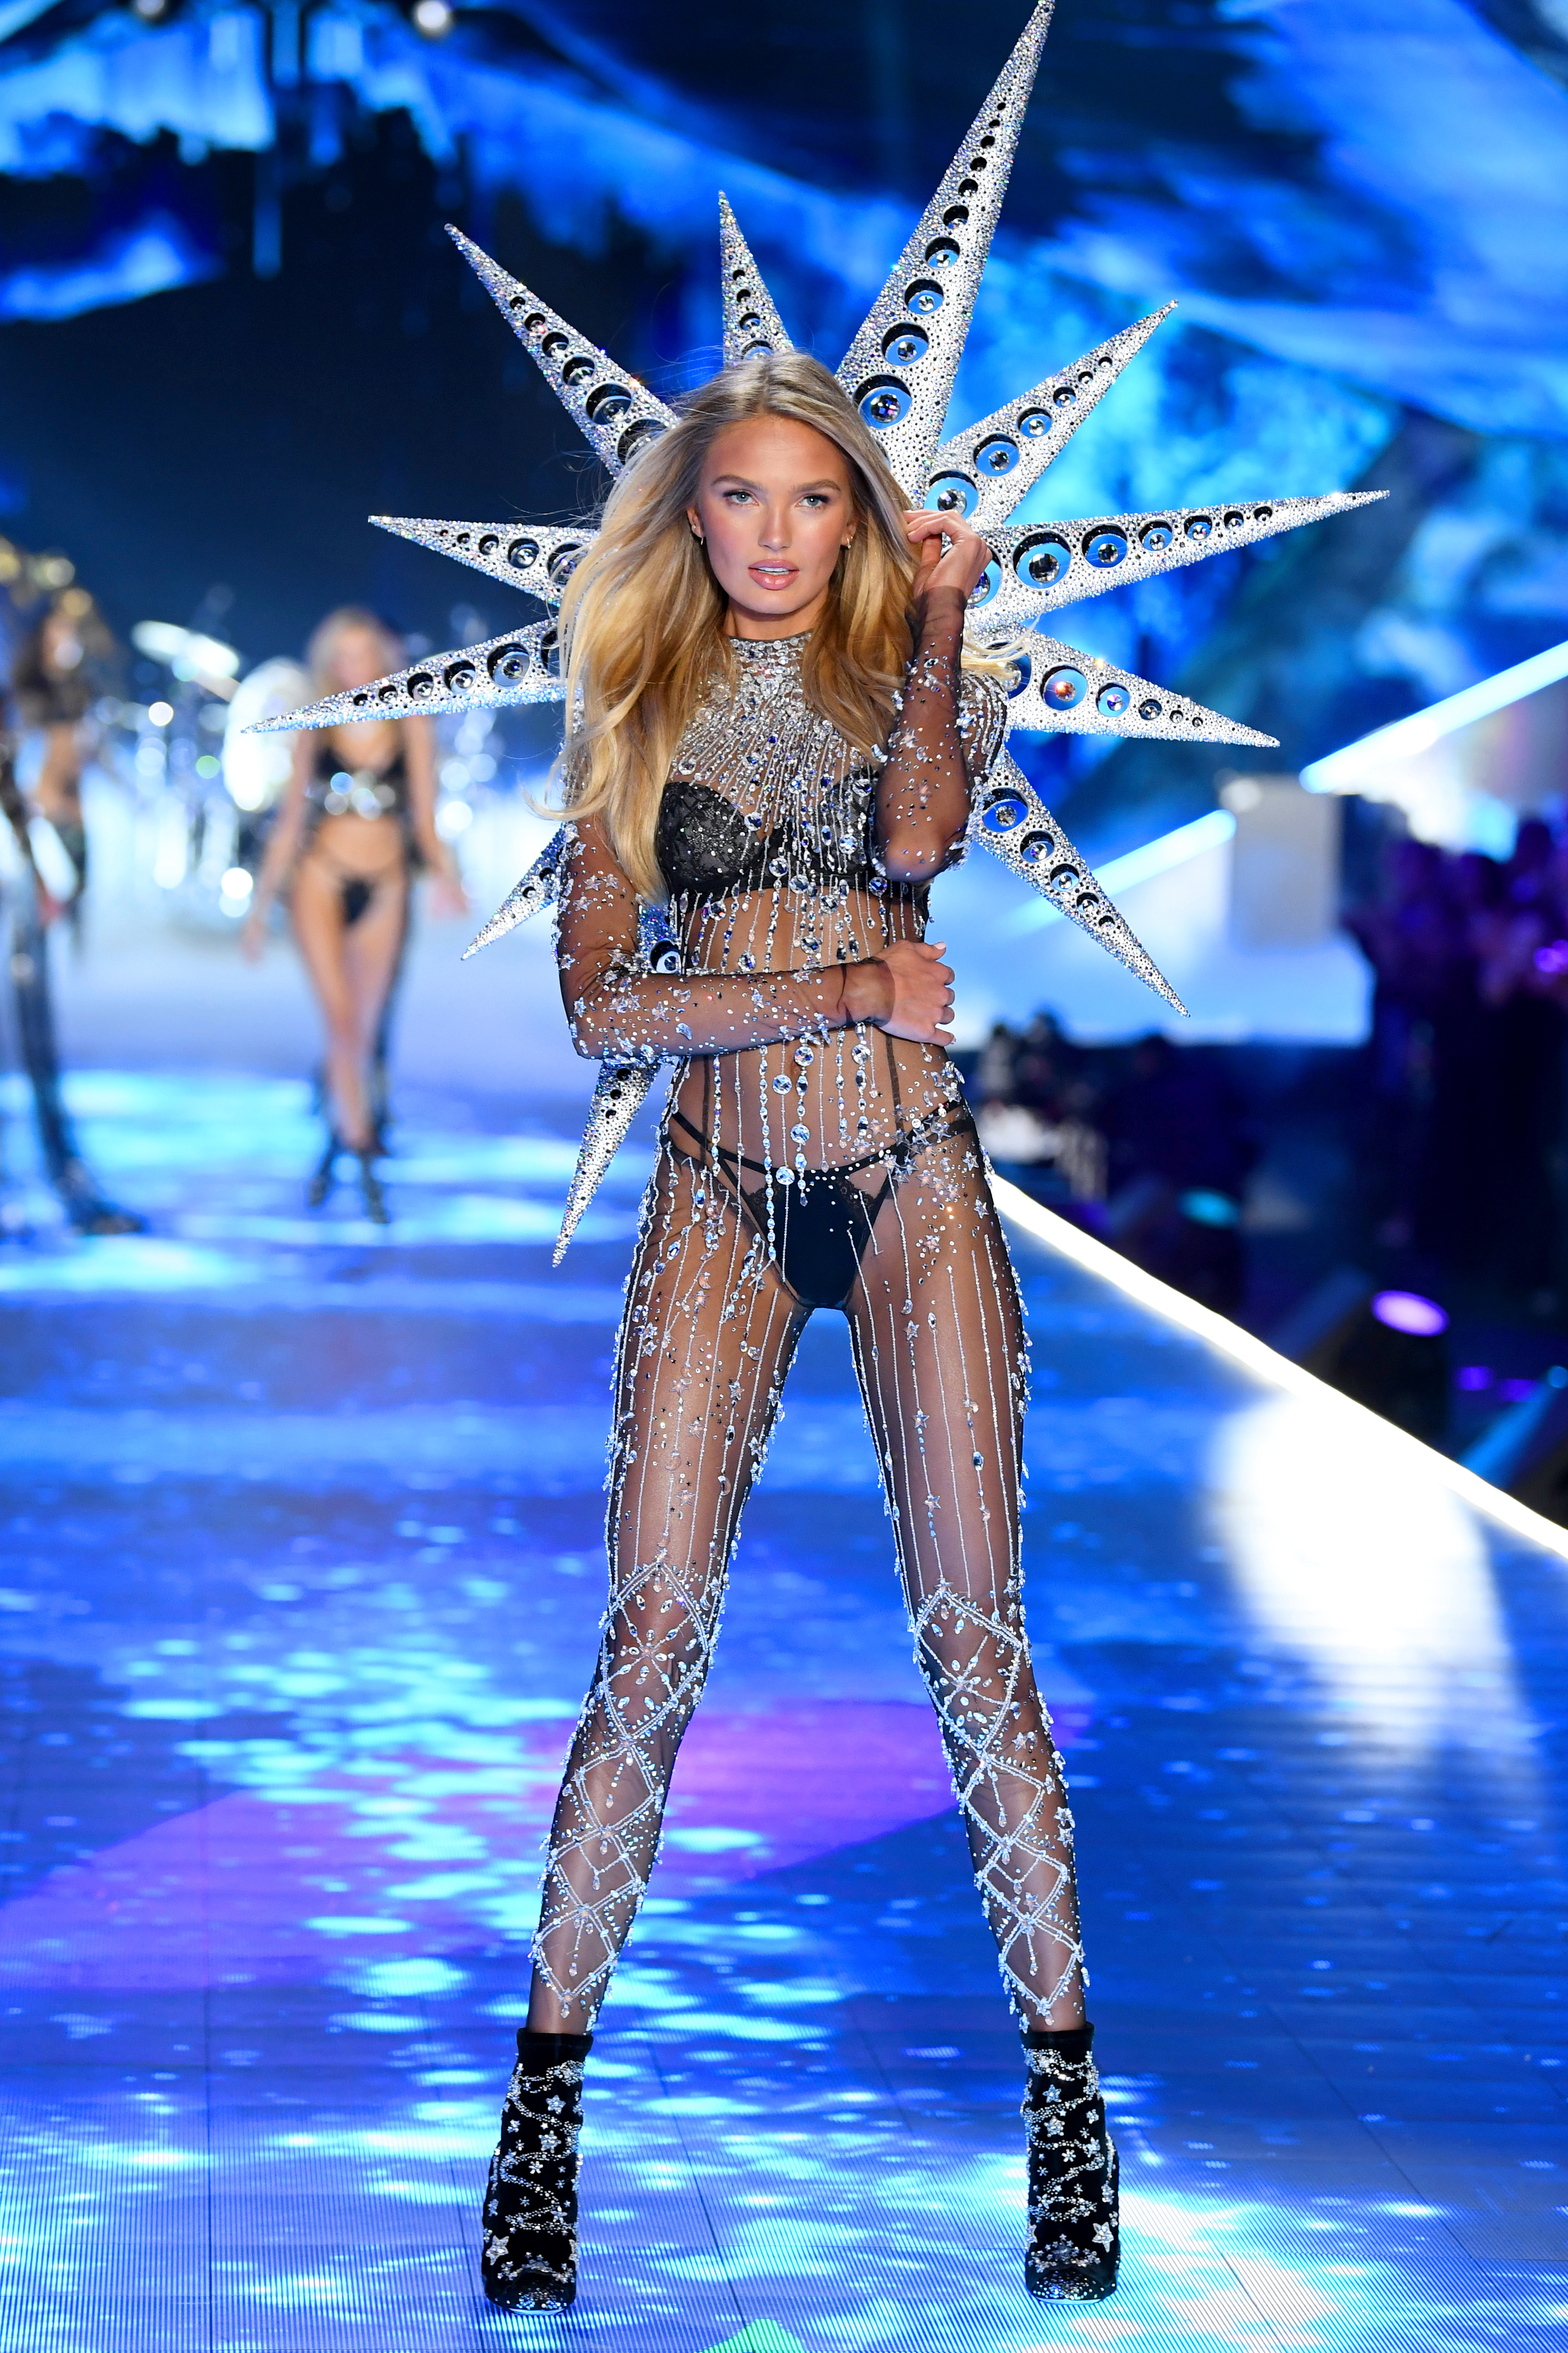 Romee Strijd walks the runway during the 2018 Victoria's Secret Fashion Show at Pier 94 on November 8, 2018, in New York City. (Getty Images)